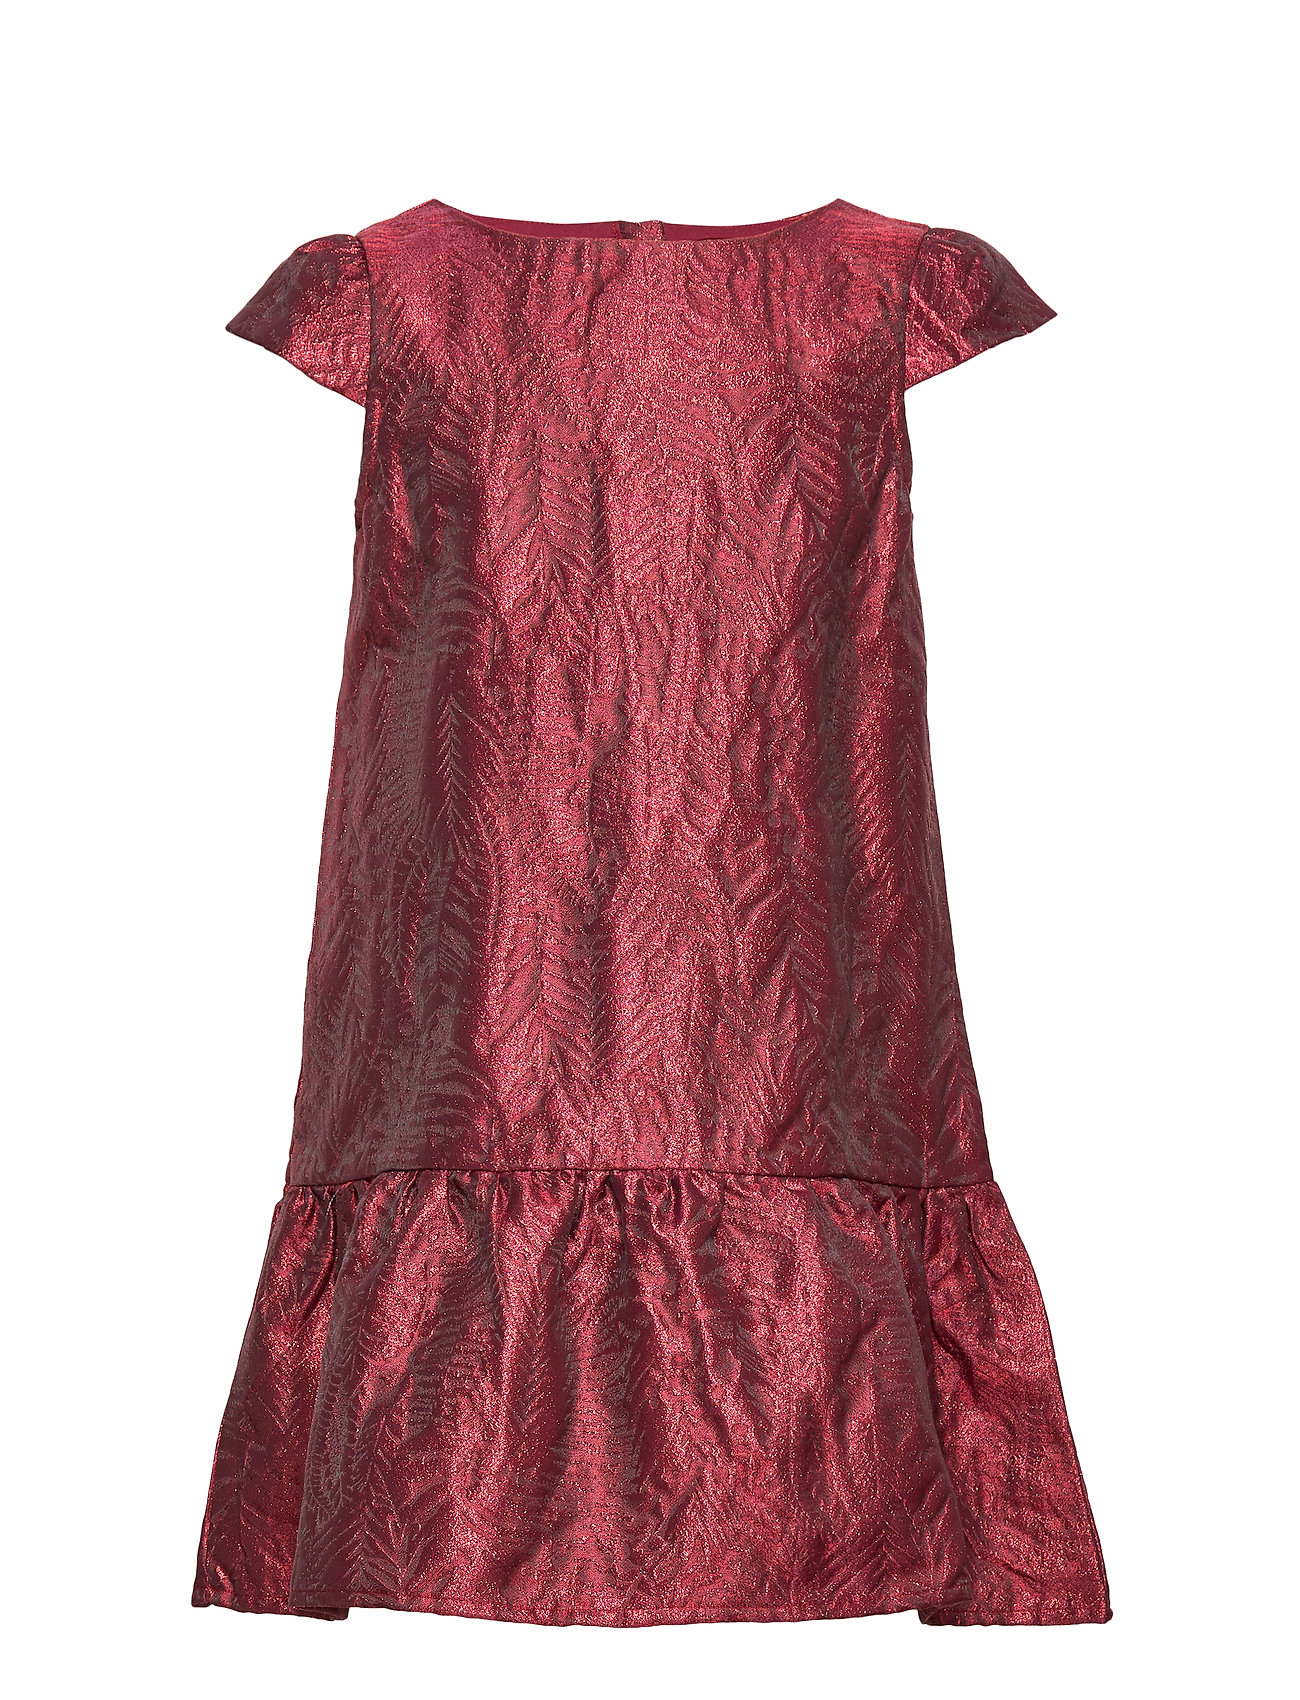 Wheat Dress Hellen - DARK BERRY